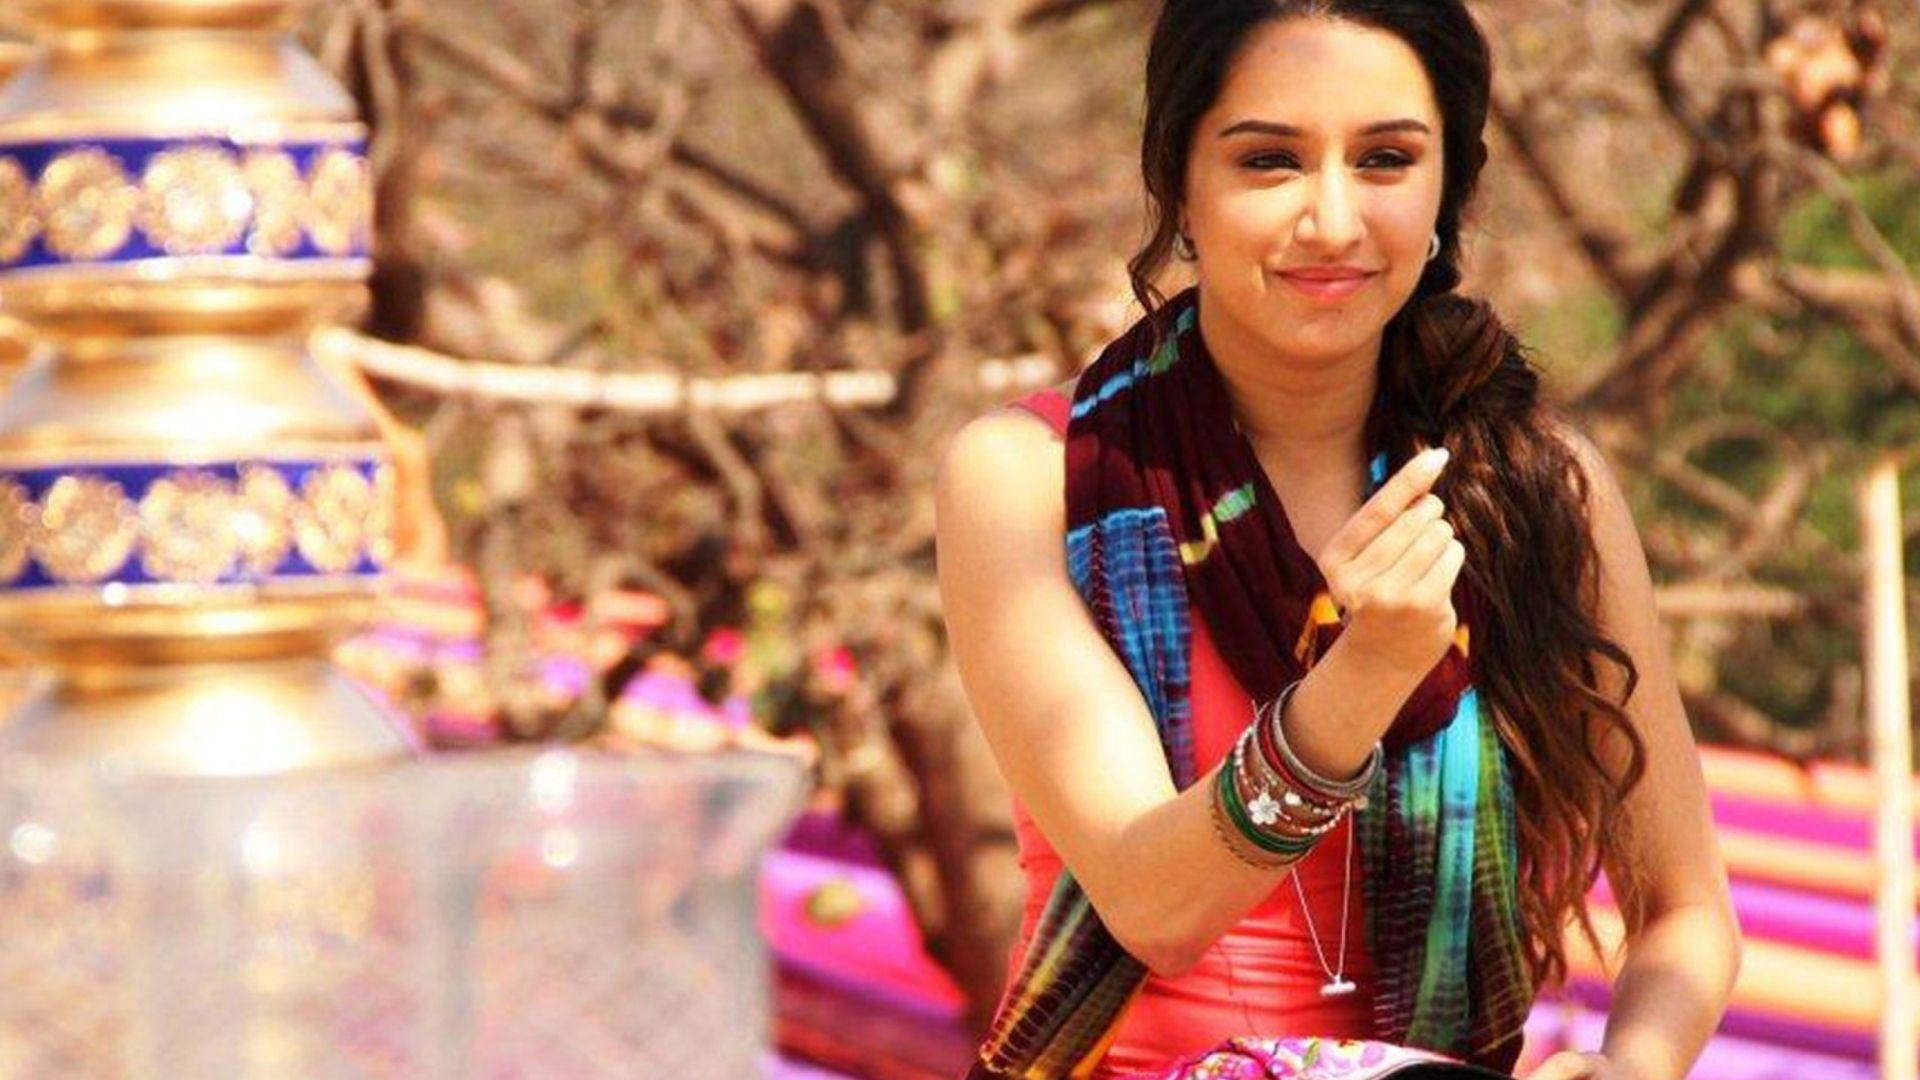 shraddha_kapoor_wallpaper_97338033